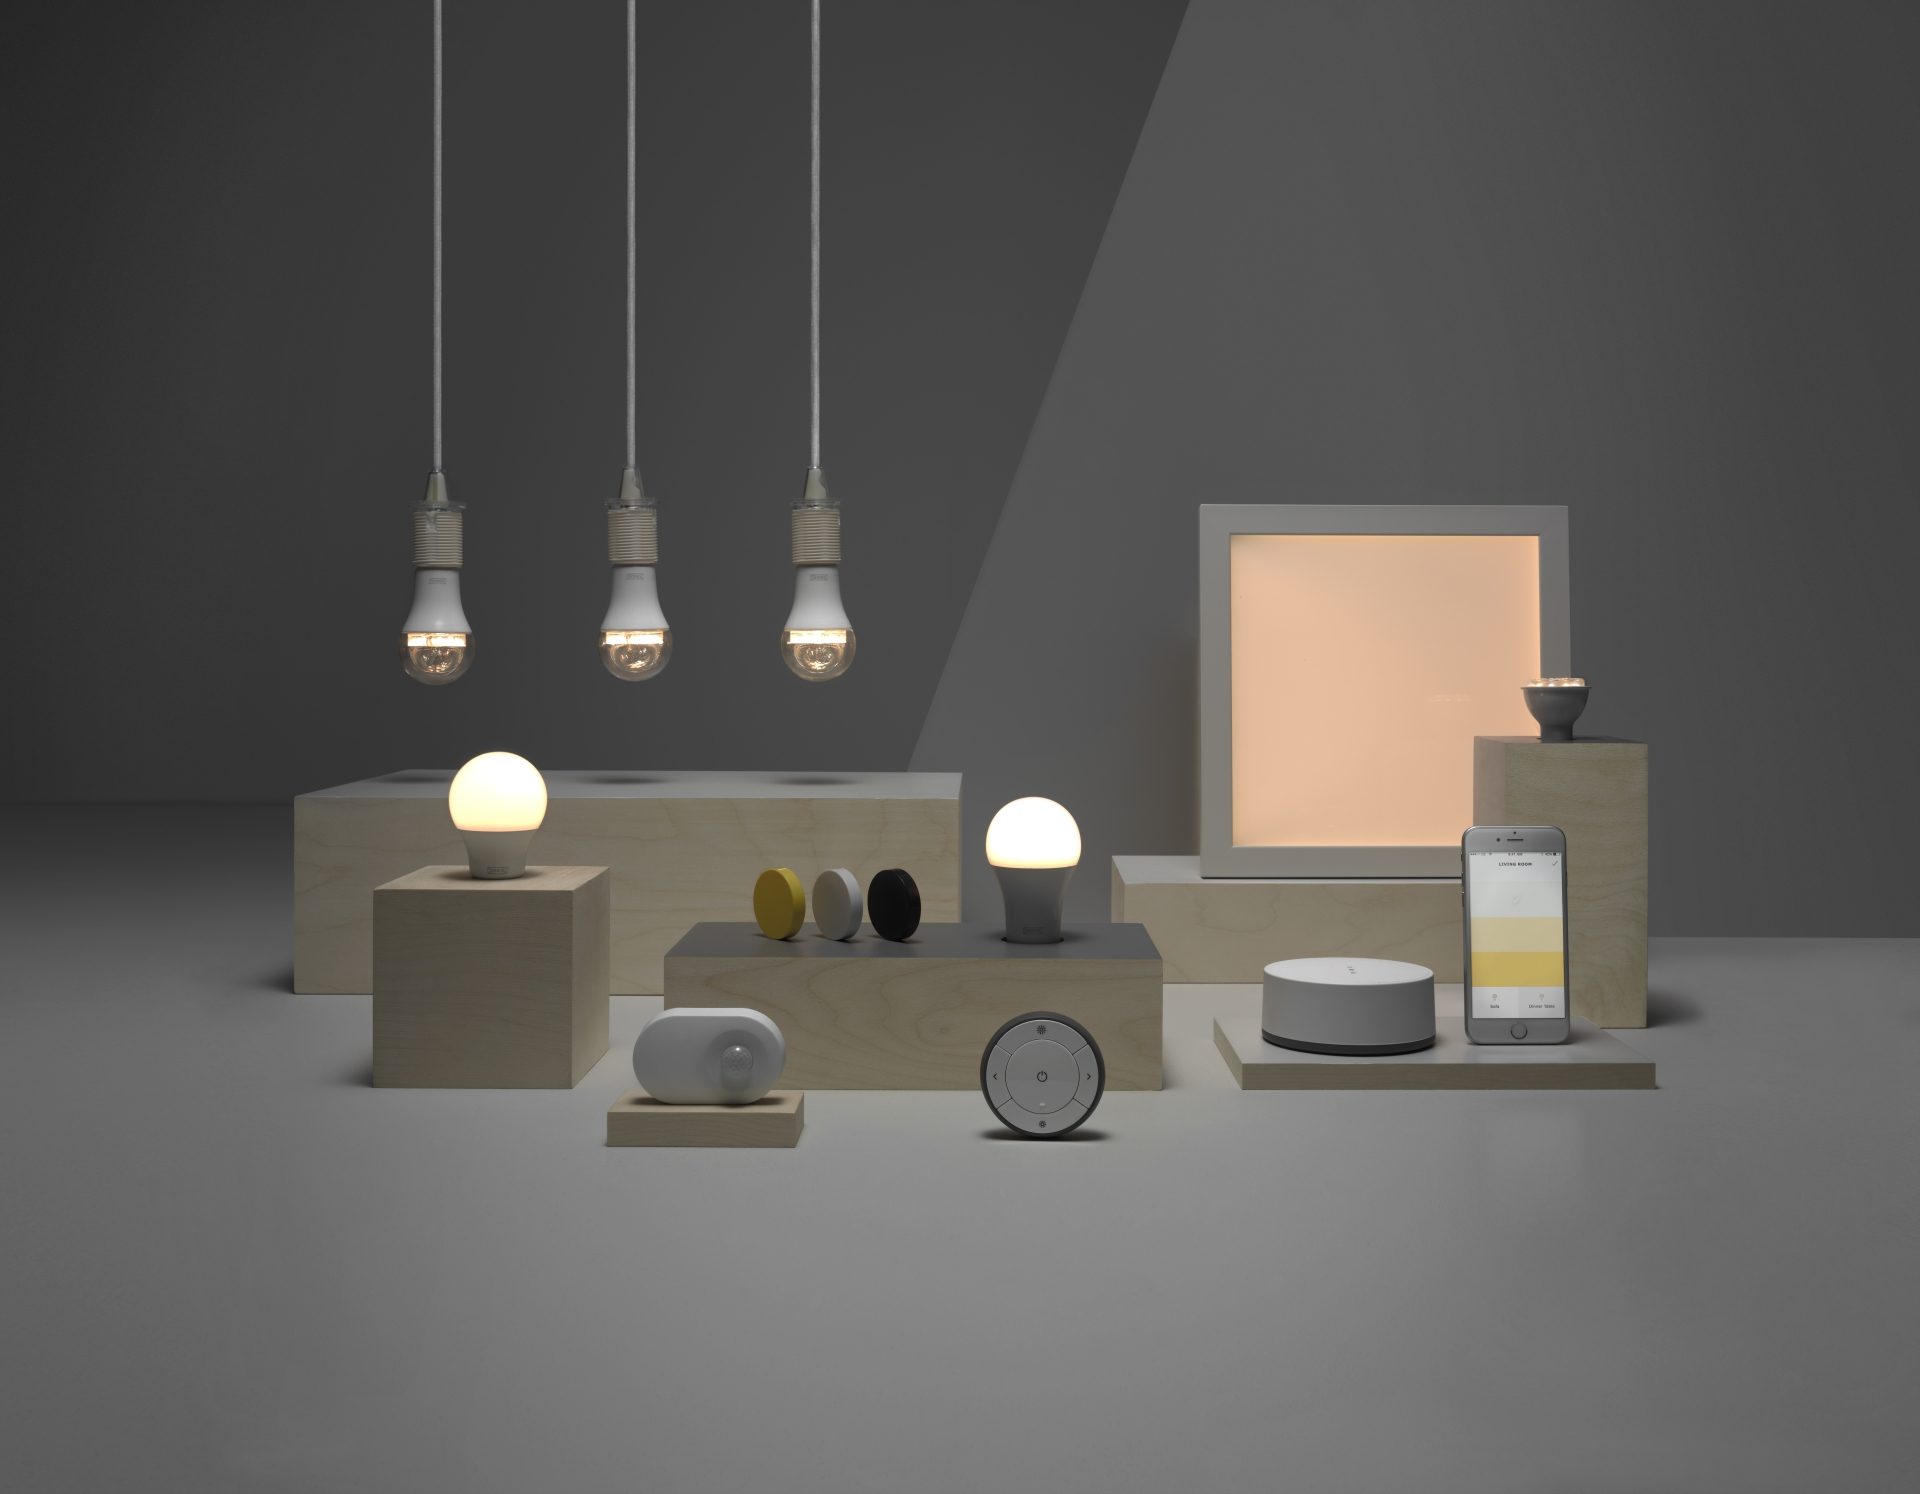 ikea_smart-lighting-1